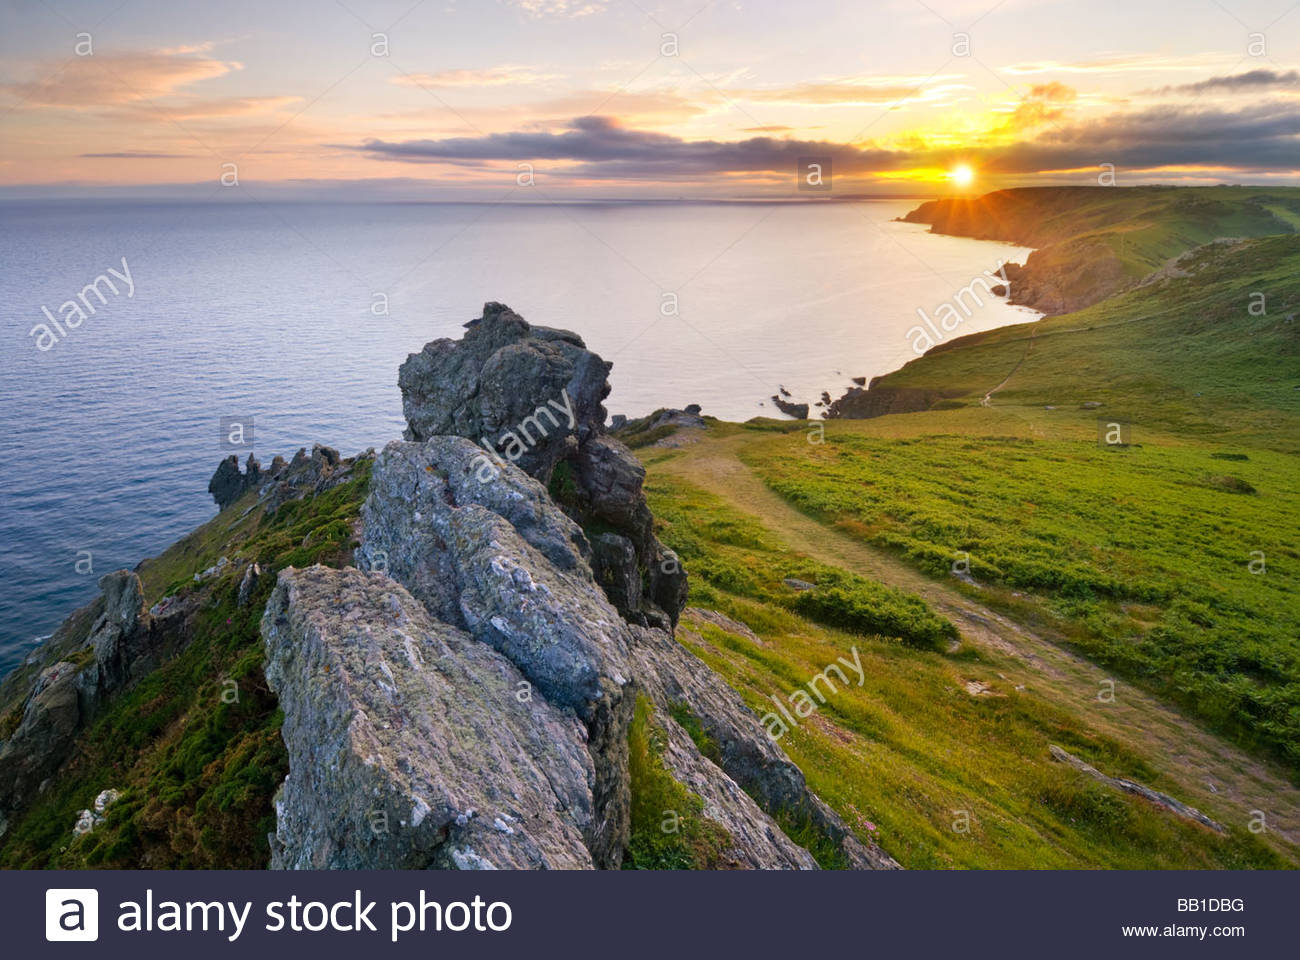 Rocks on the coast near Soar Mill Cove, South Hams, South Devon, England. - Stock Image